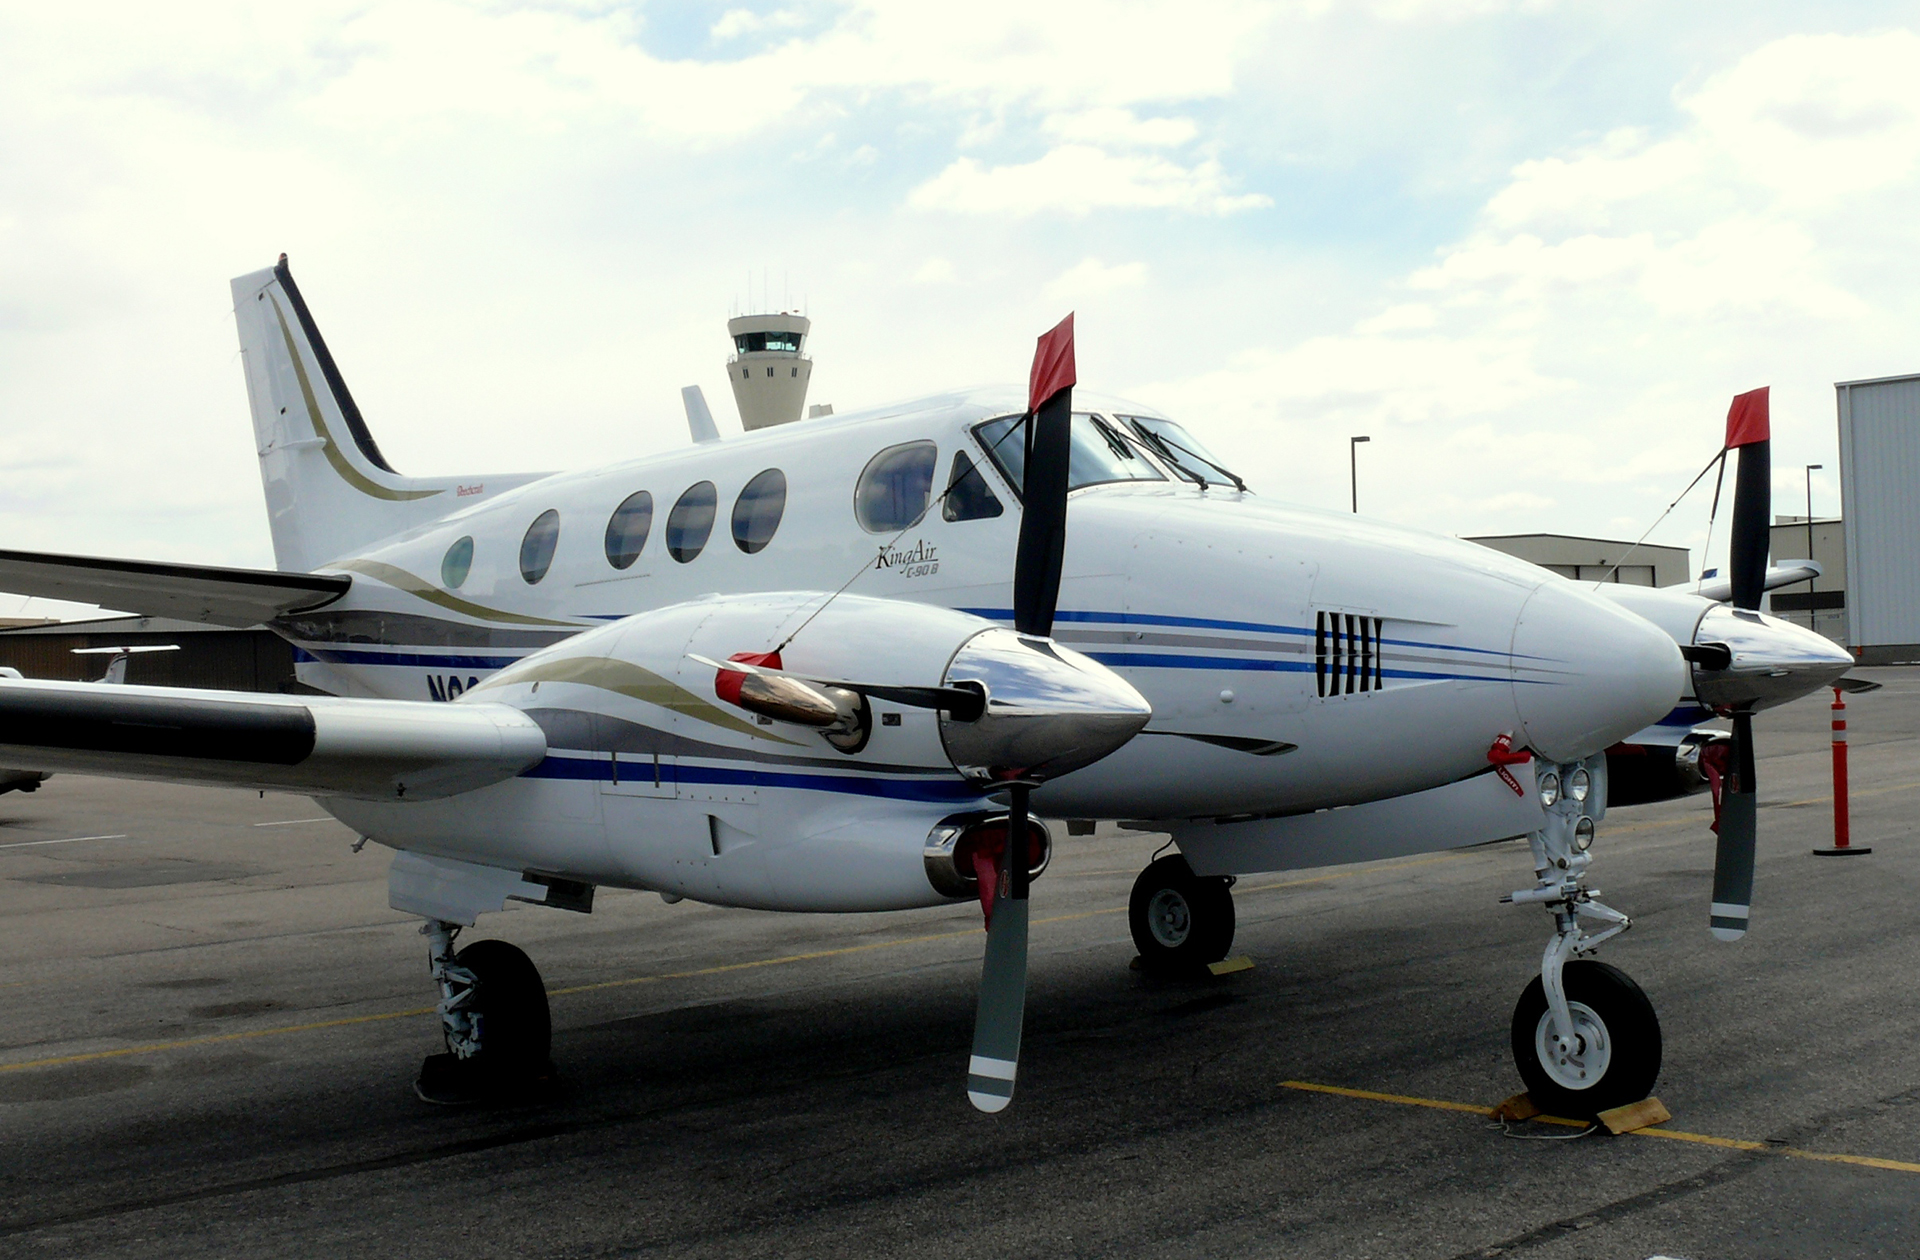 Beechcraft King Air C90 Aircraft At Centennial Airport in Dove Valley CDP, Colorado, USA on April 14th, 2008